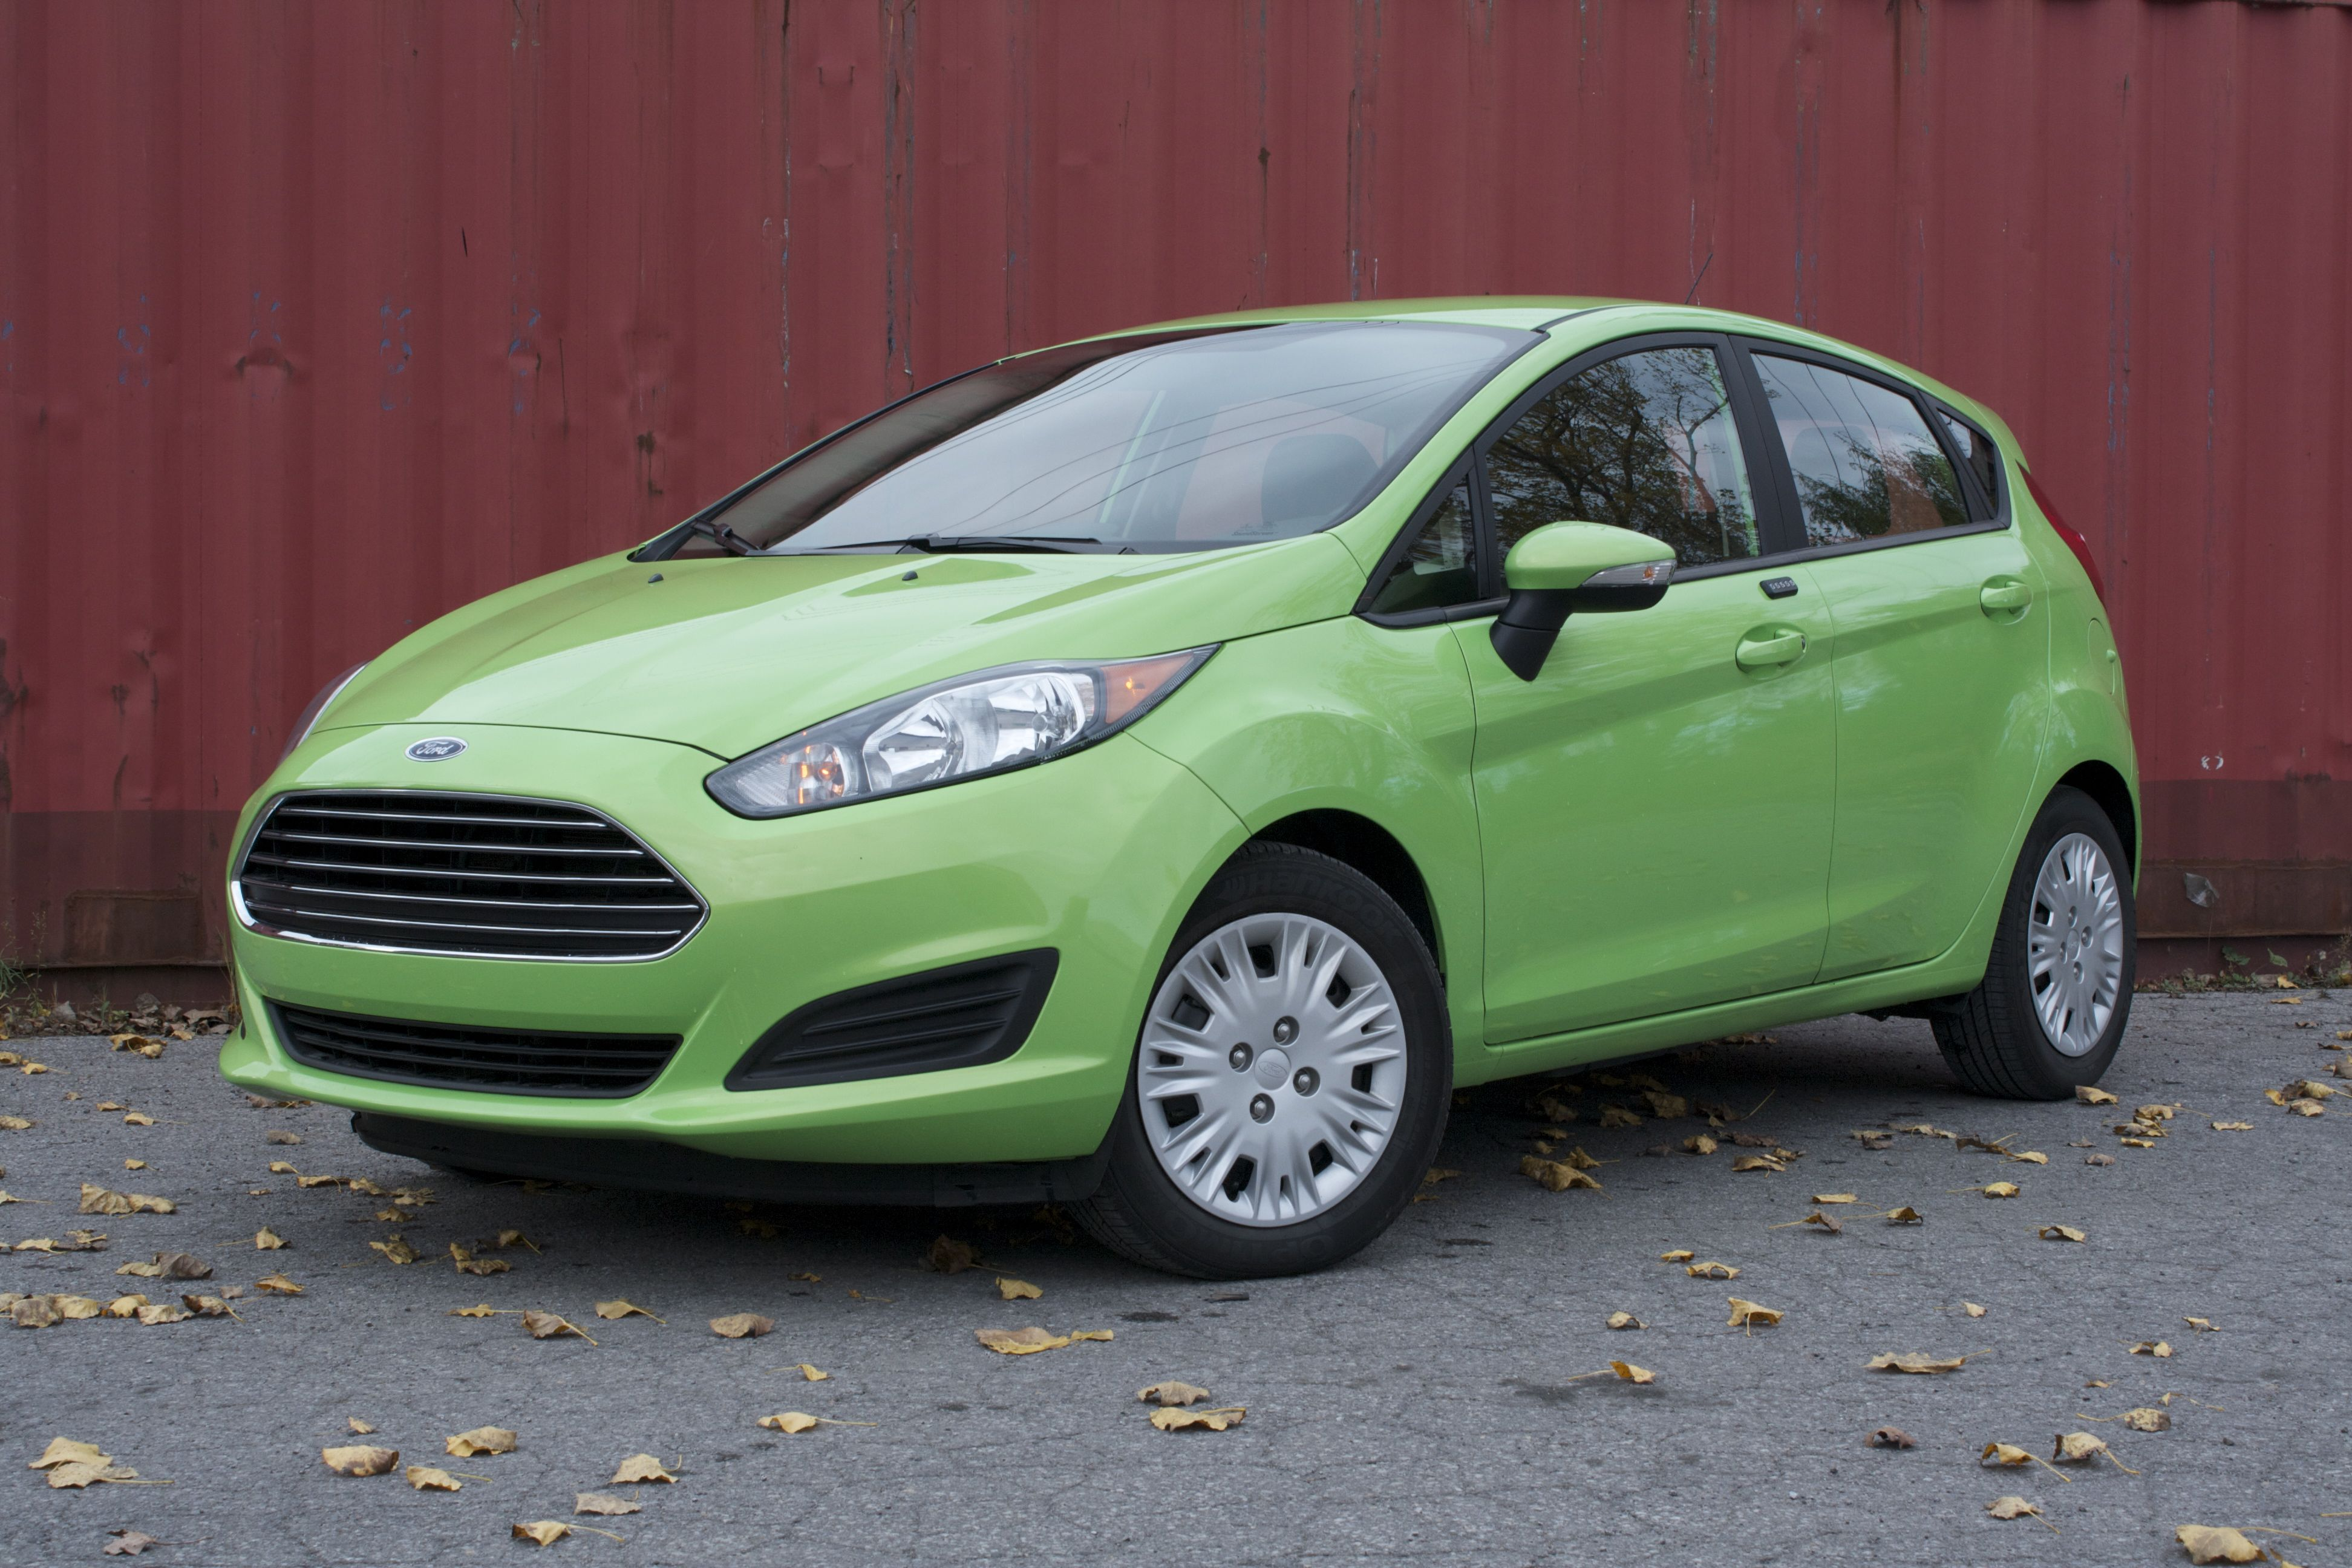 2014 Ford Fiesta 1 0L EcoBoost – Review | EcoloDriver